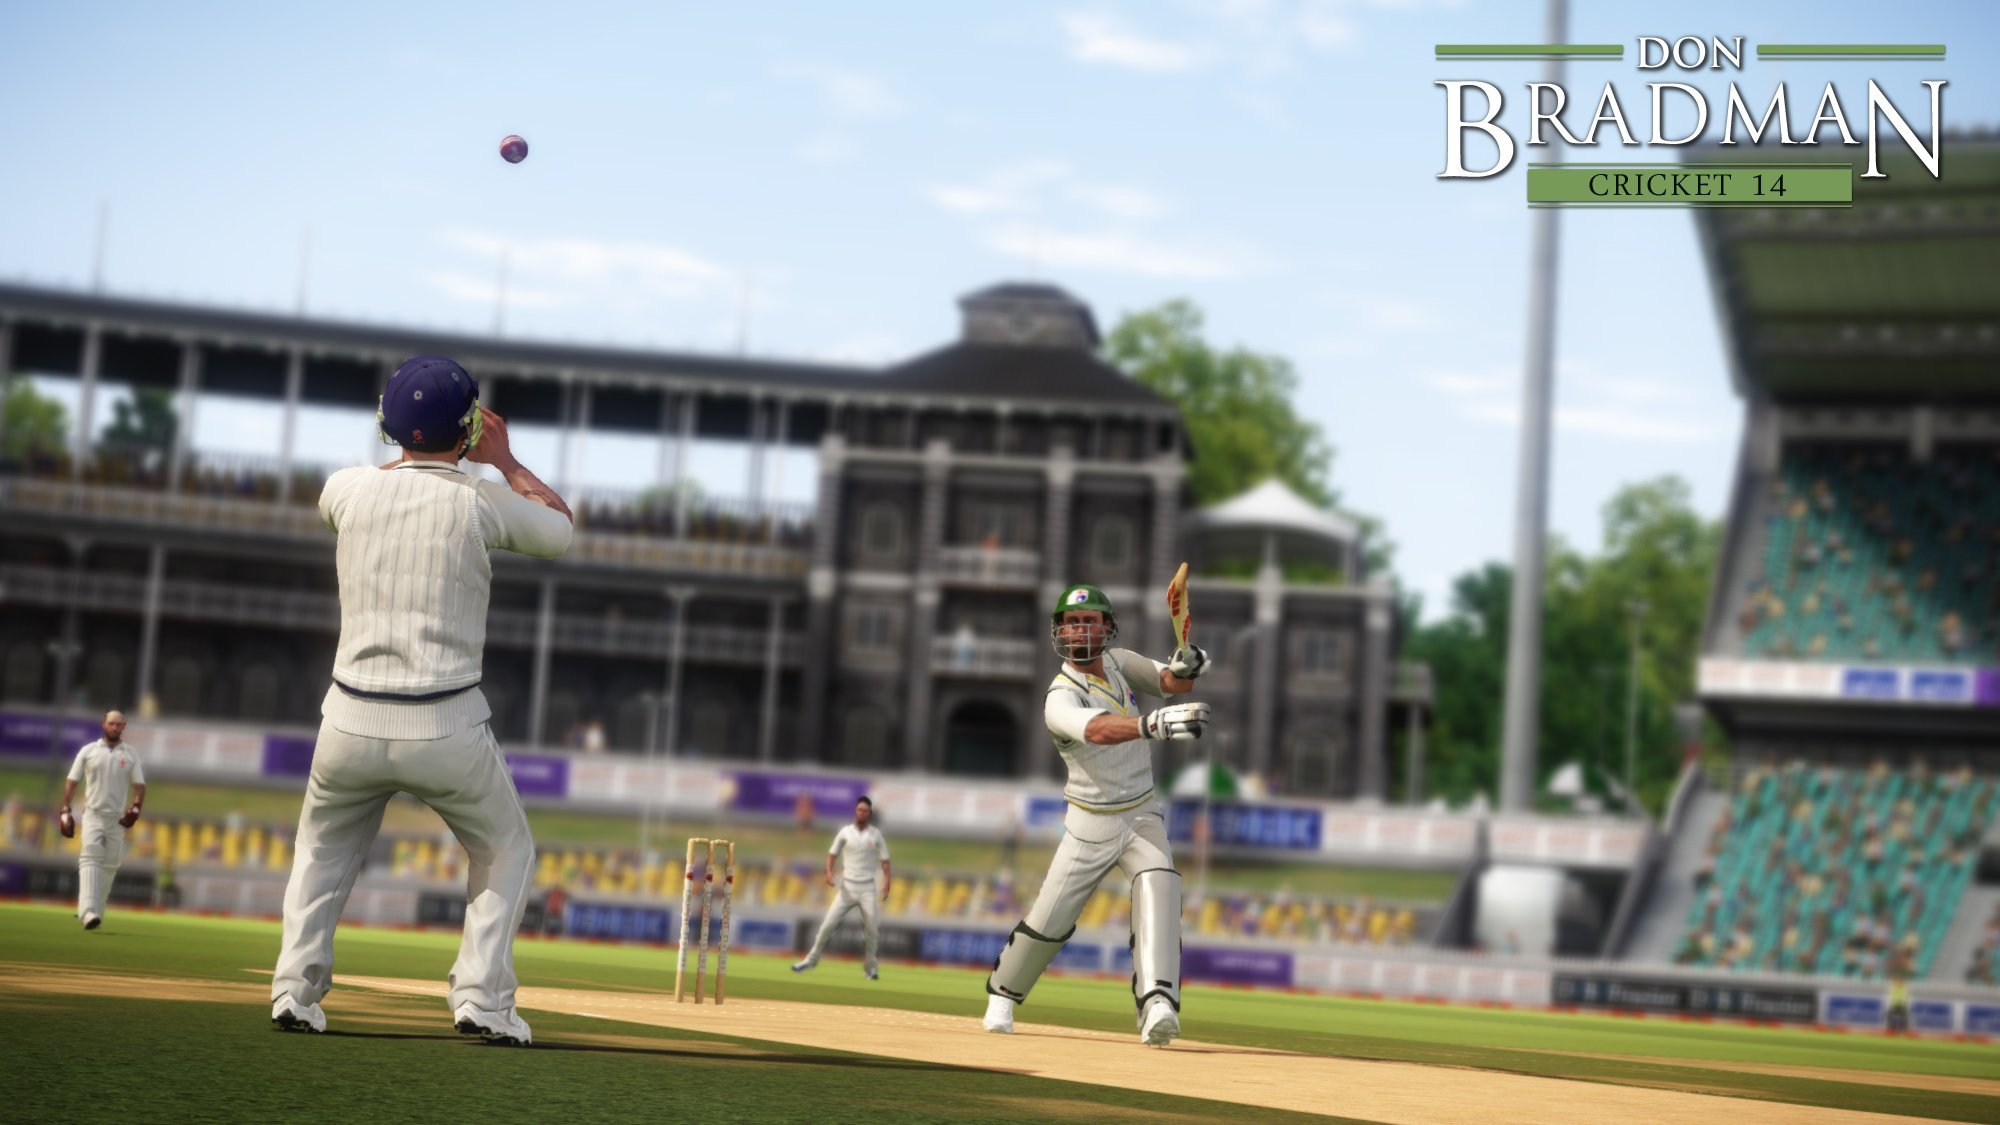 Don Bradman Cricket 14 for Xbox 360